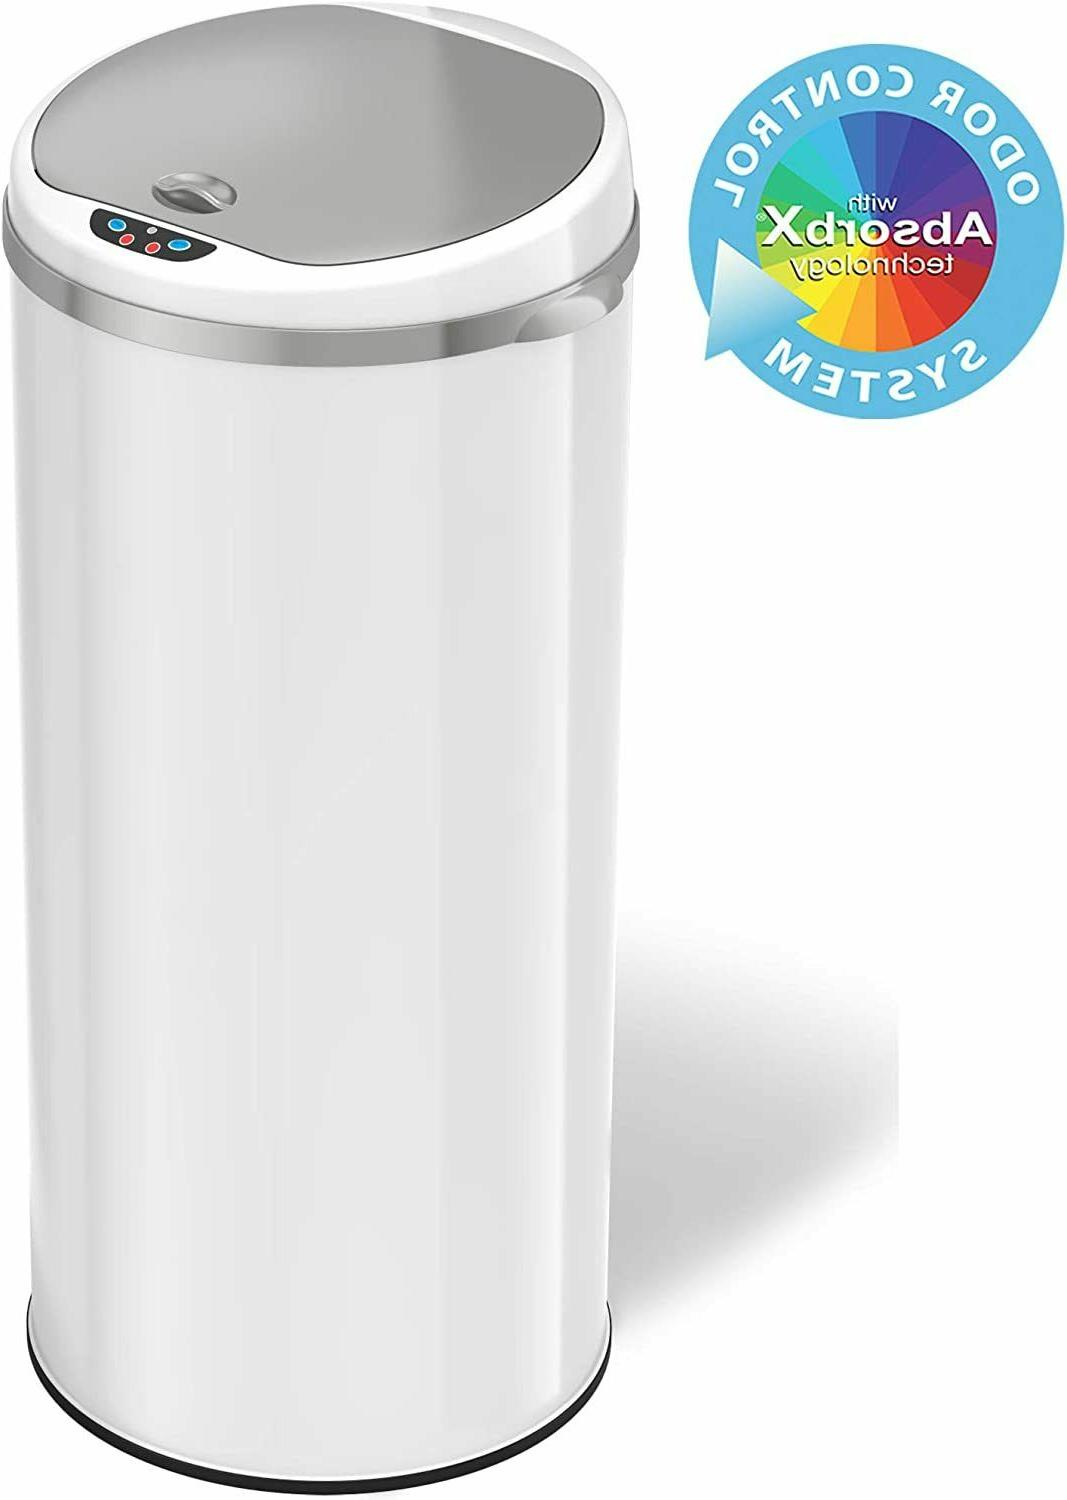 13 Gallon Touchless Sensor Trash Can with Odor Filter System